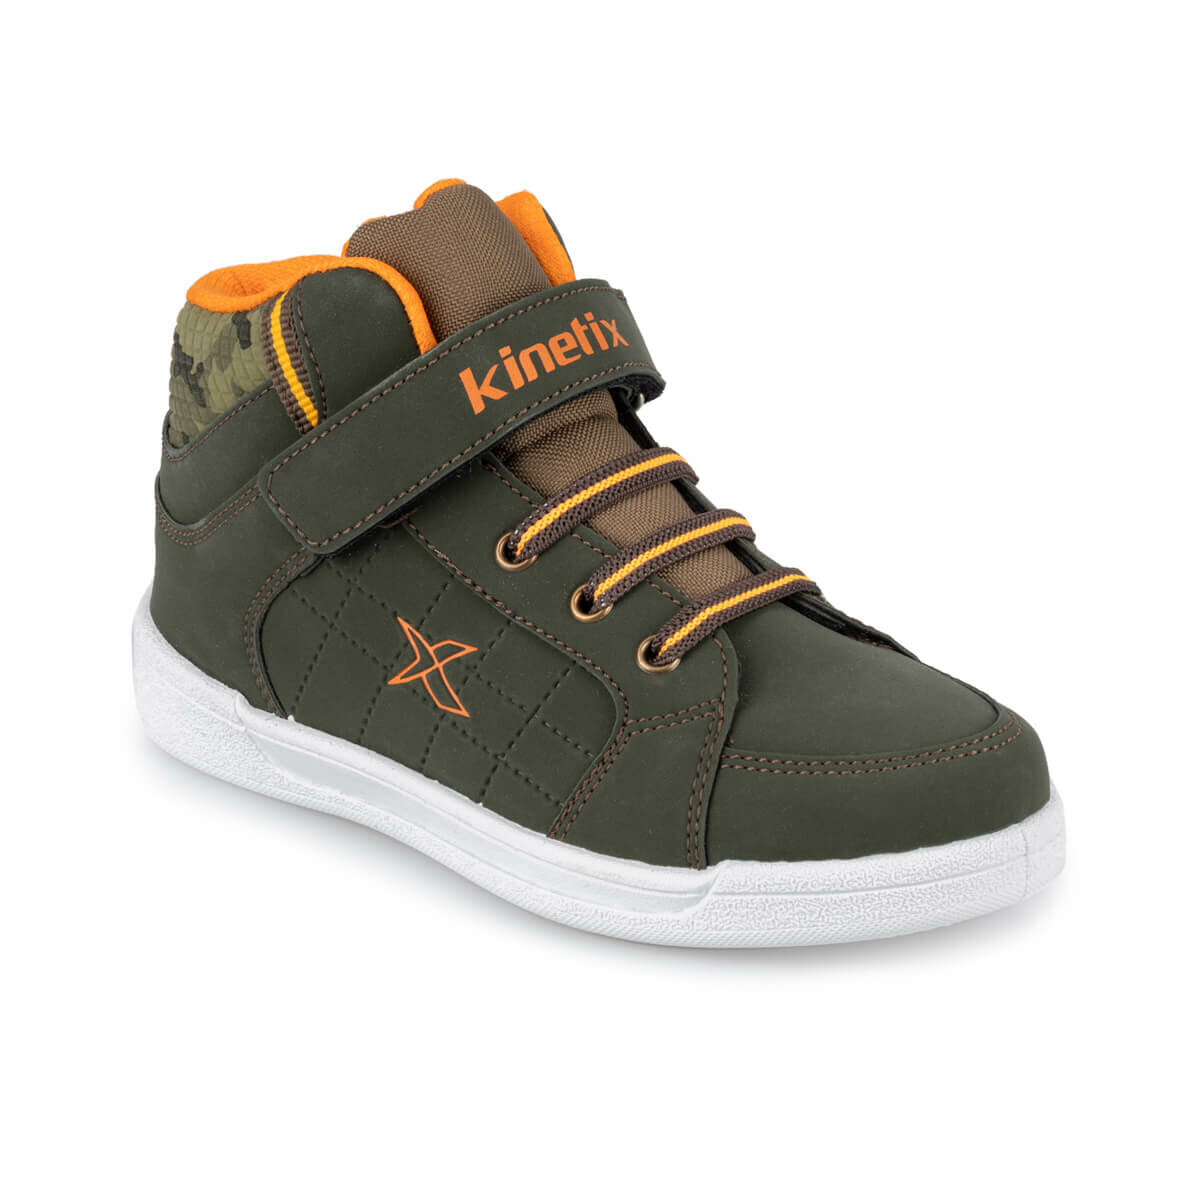 FLO LENKO HI C 9PR Khaki Male Child Shoes KINETIX